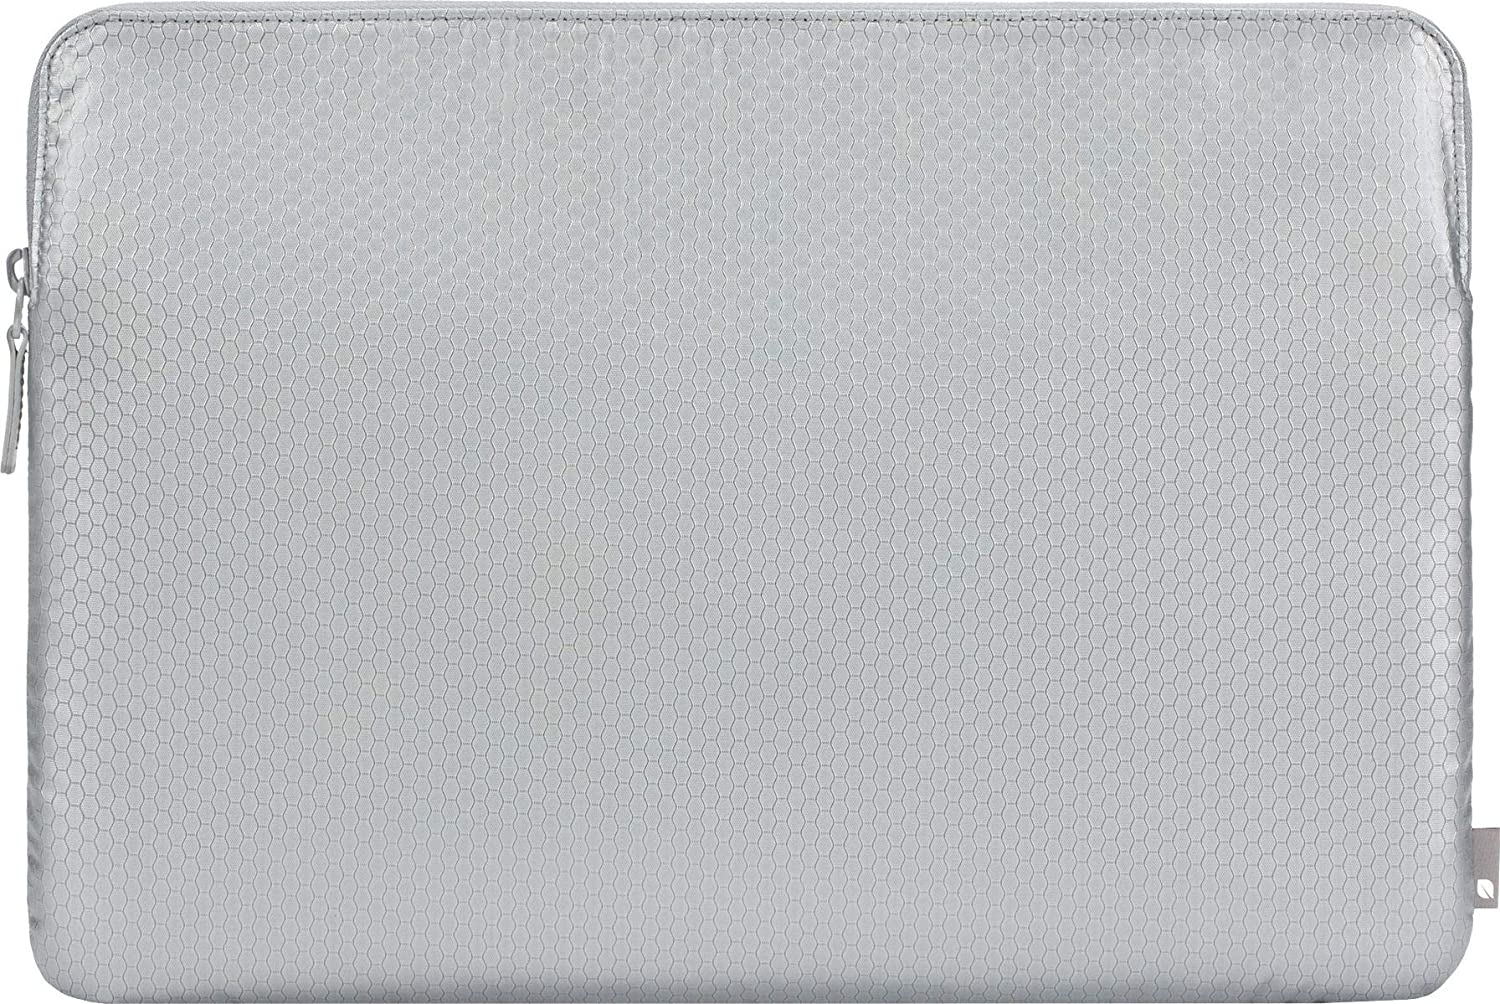 Incase Slim Sleeve Case for Apple MacBook Pro (Retina) 15.4 Inch / Pro 15.4 Inch (2016 - 2019) / Pro 16 Inch (Honeycomb Ripstop, 3 mm Thick Faux Fur Interior, Zip), Silver